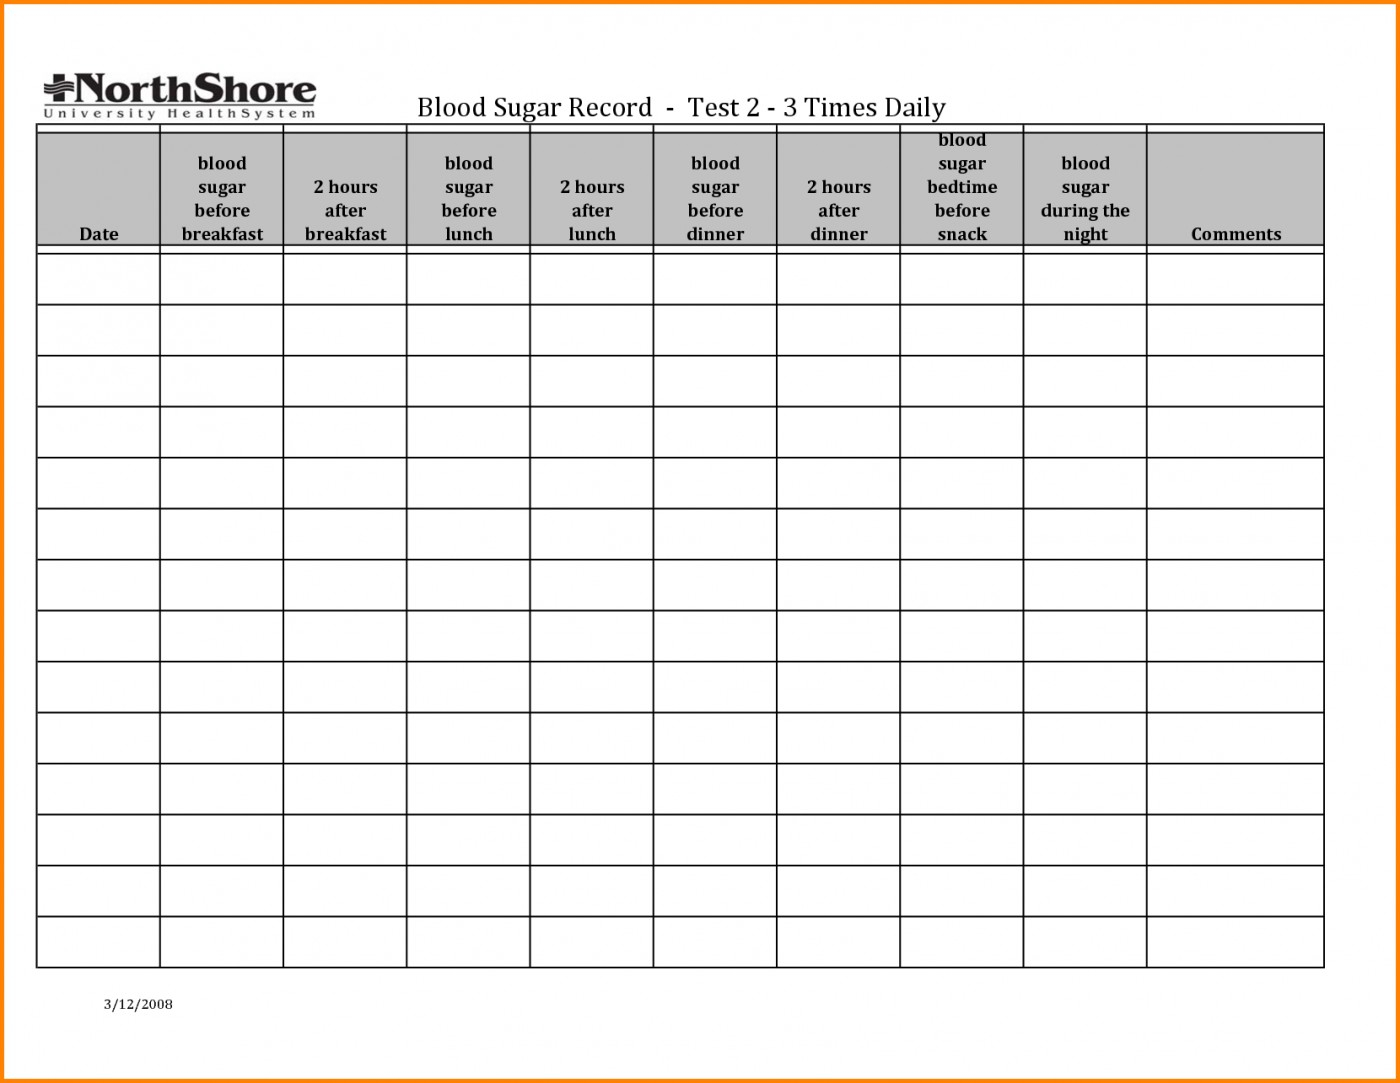 Diabetes Food Log Spreadsheet Throughout 017 Blood Sugar Log Template Diabetes Level Chart Luxury Printable Diabetes Food Log Spreadsheet Printable Spreadshee Printable Spreadshee diabetes food log printable